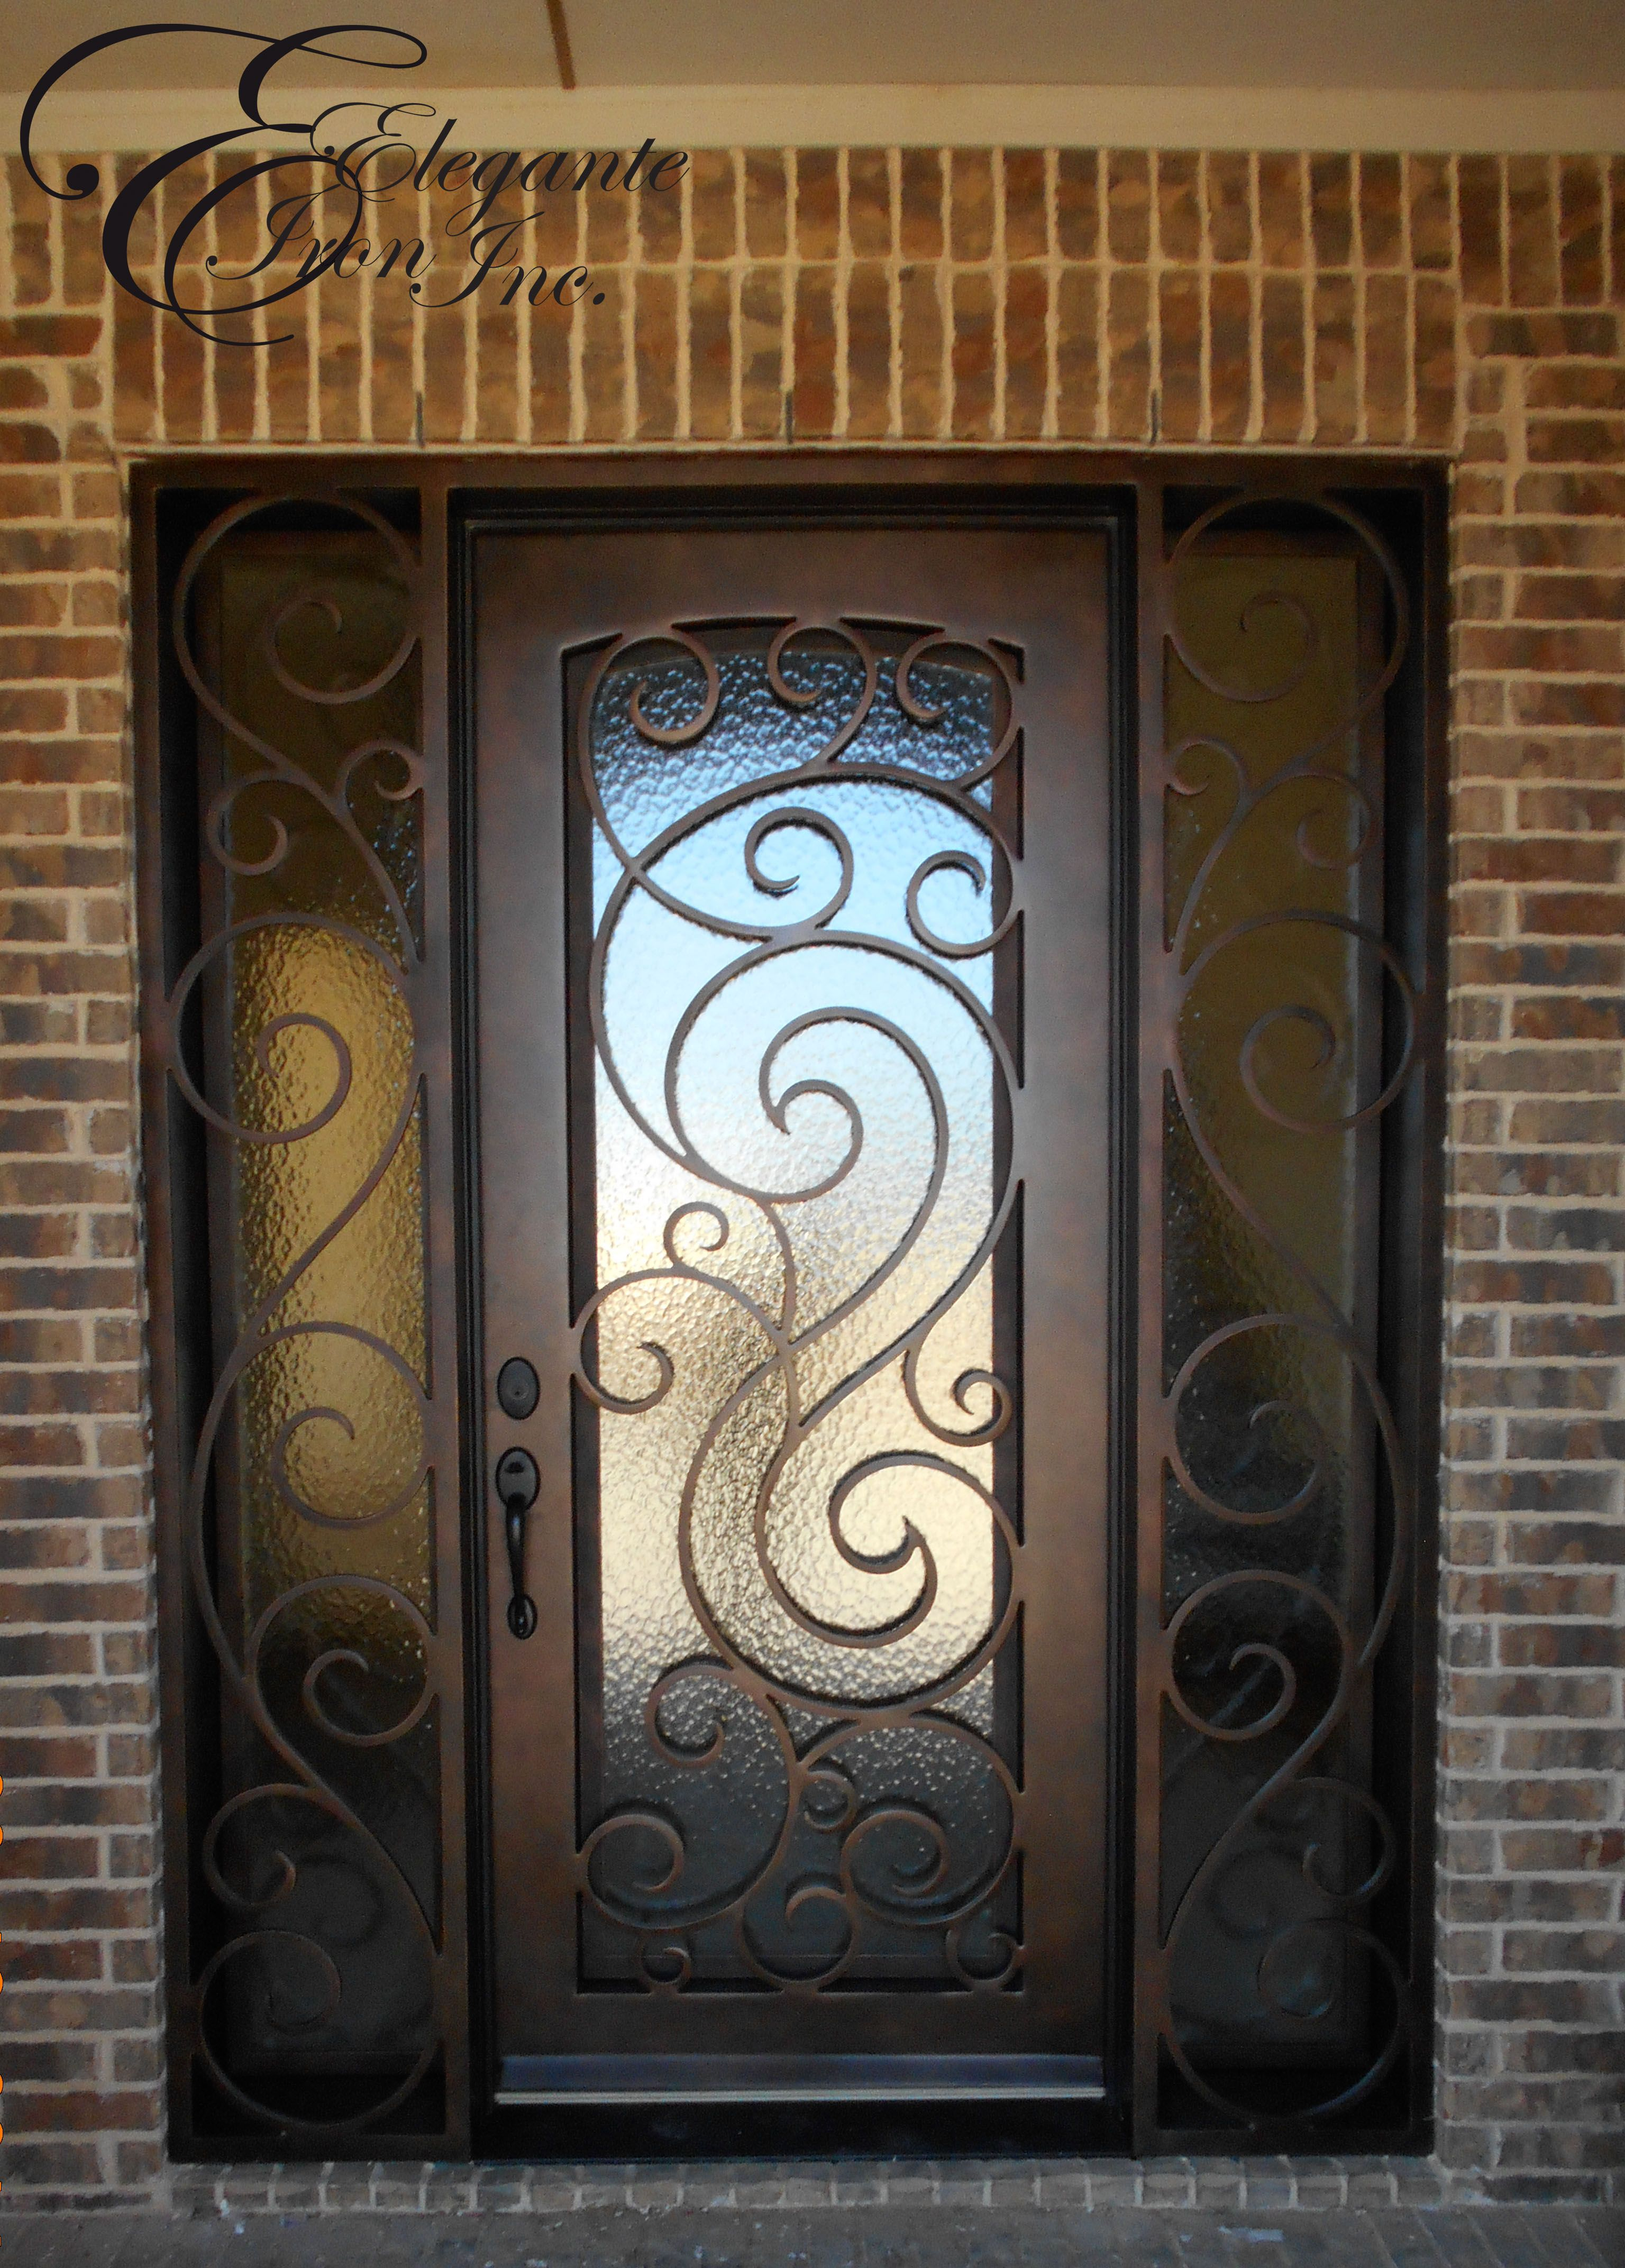 4288 #356F96 Wrought Iron Door With Side Lights. Single Doors Pinterest image Wrought Iron And Wood Doors 40033072